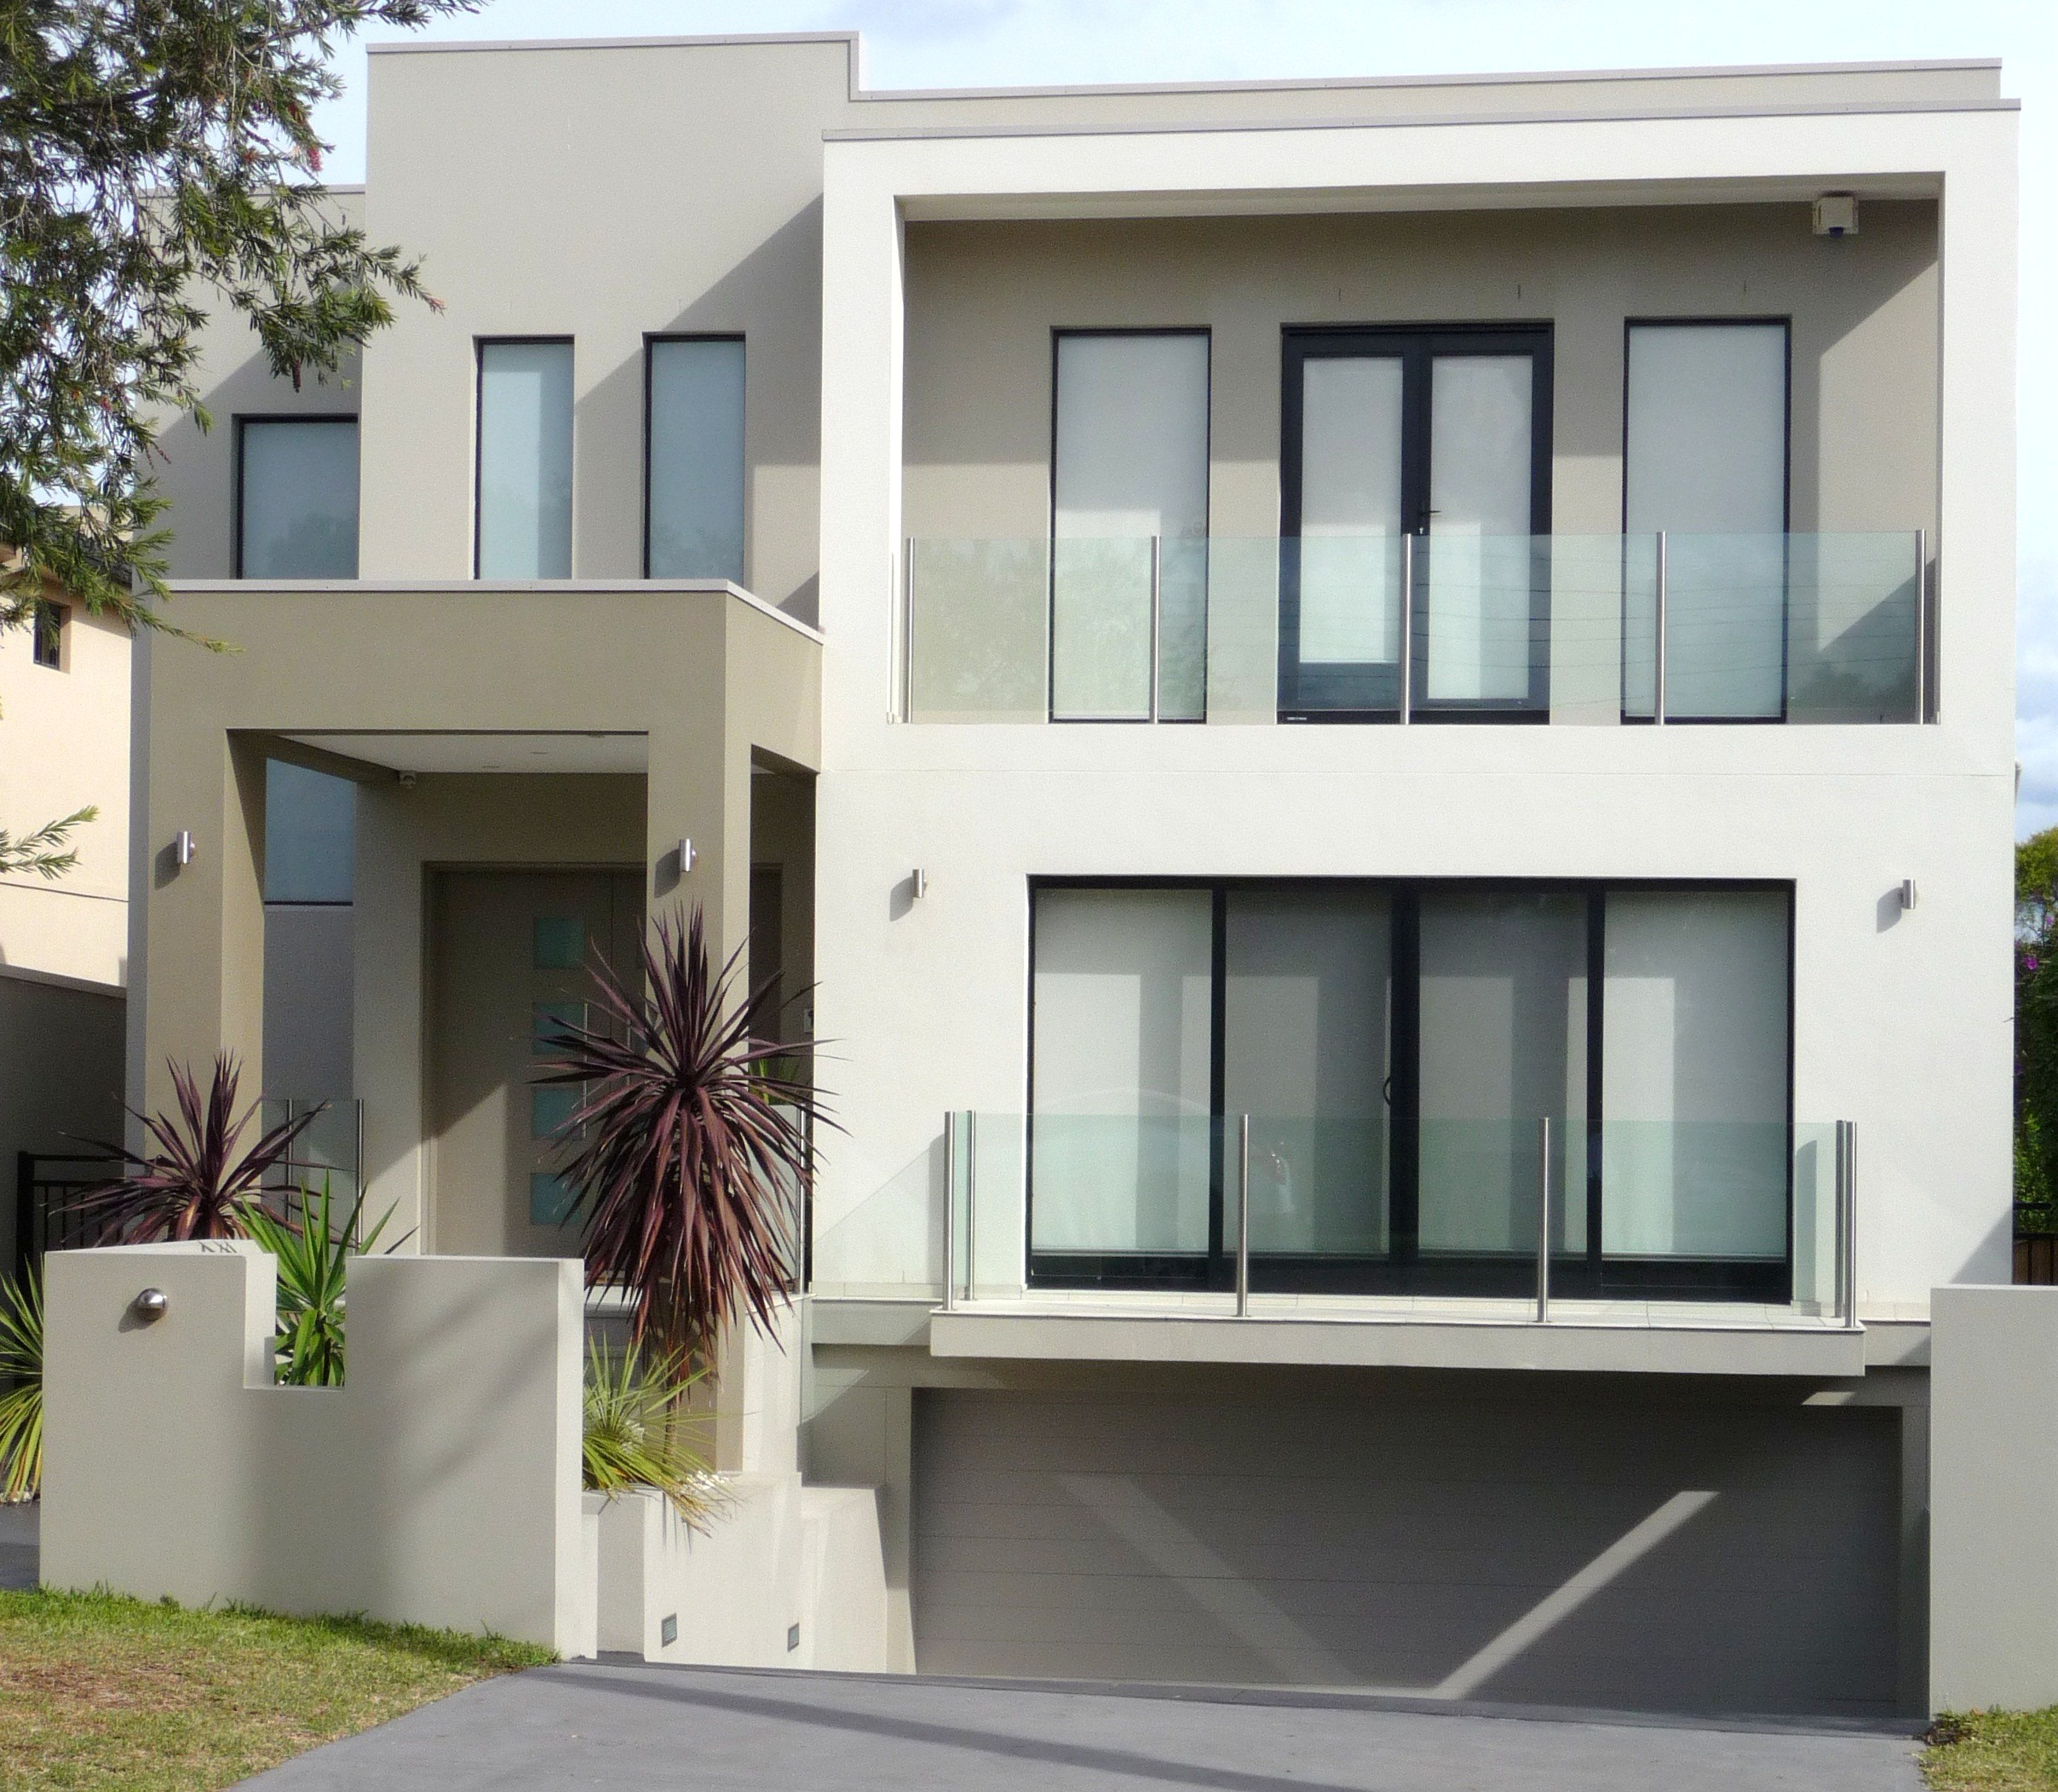 Luxury Modern New Home Carss Park NSW 2221 Kogarah Council